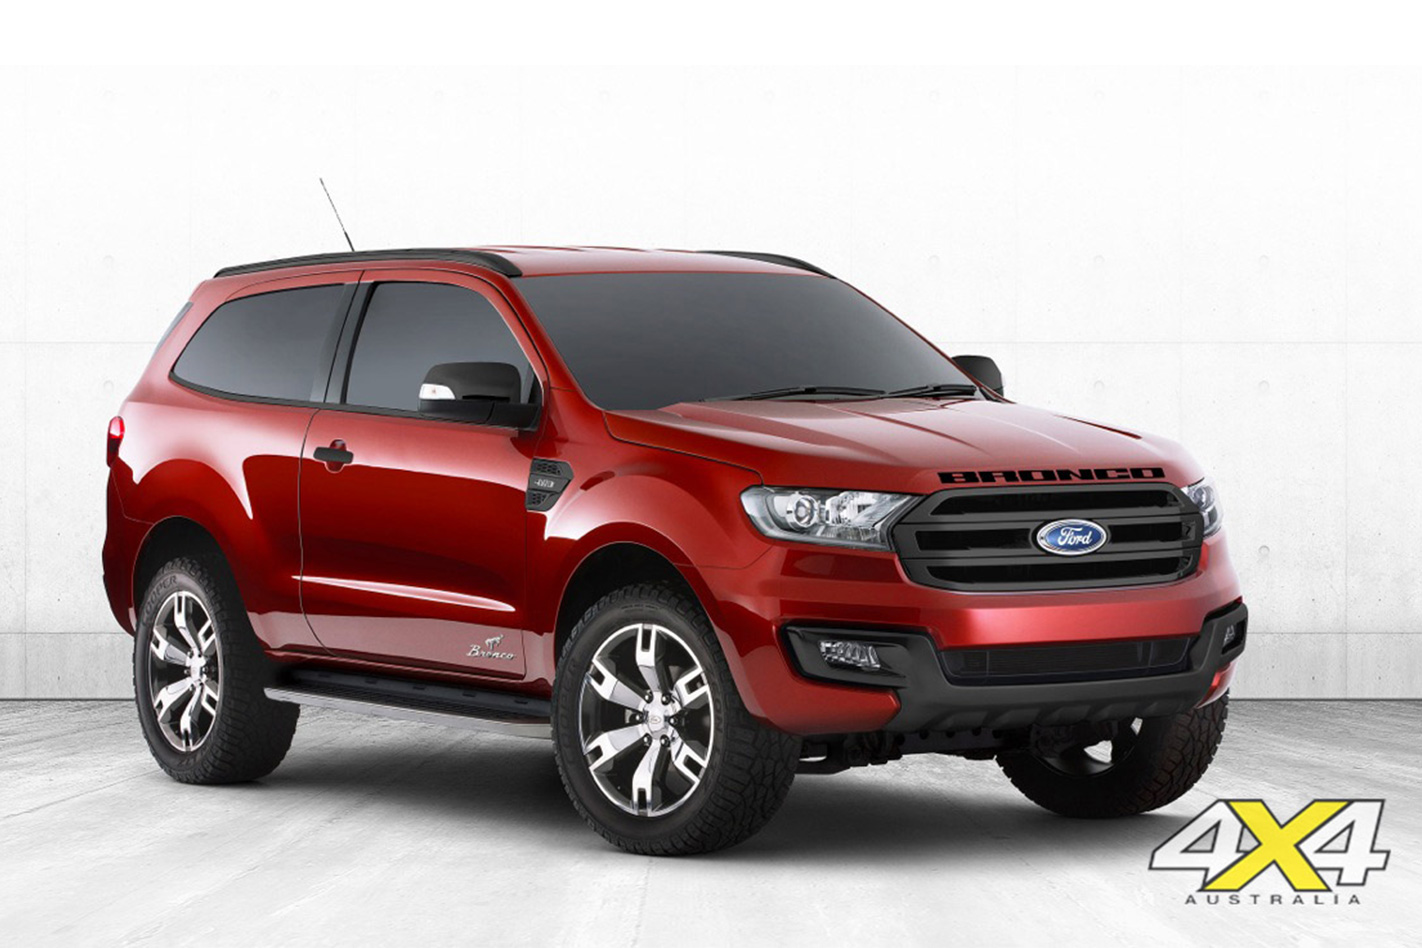 New Ford Bronco and Ranger to be built in USA | 4X4 Australia